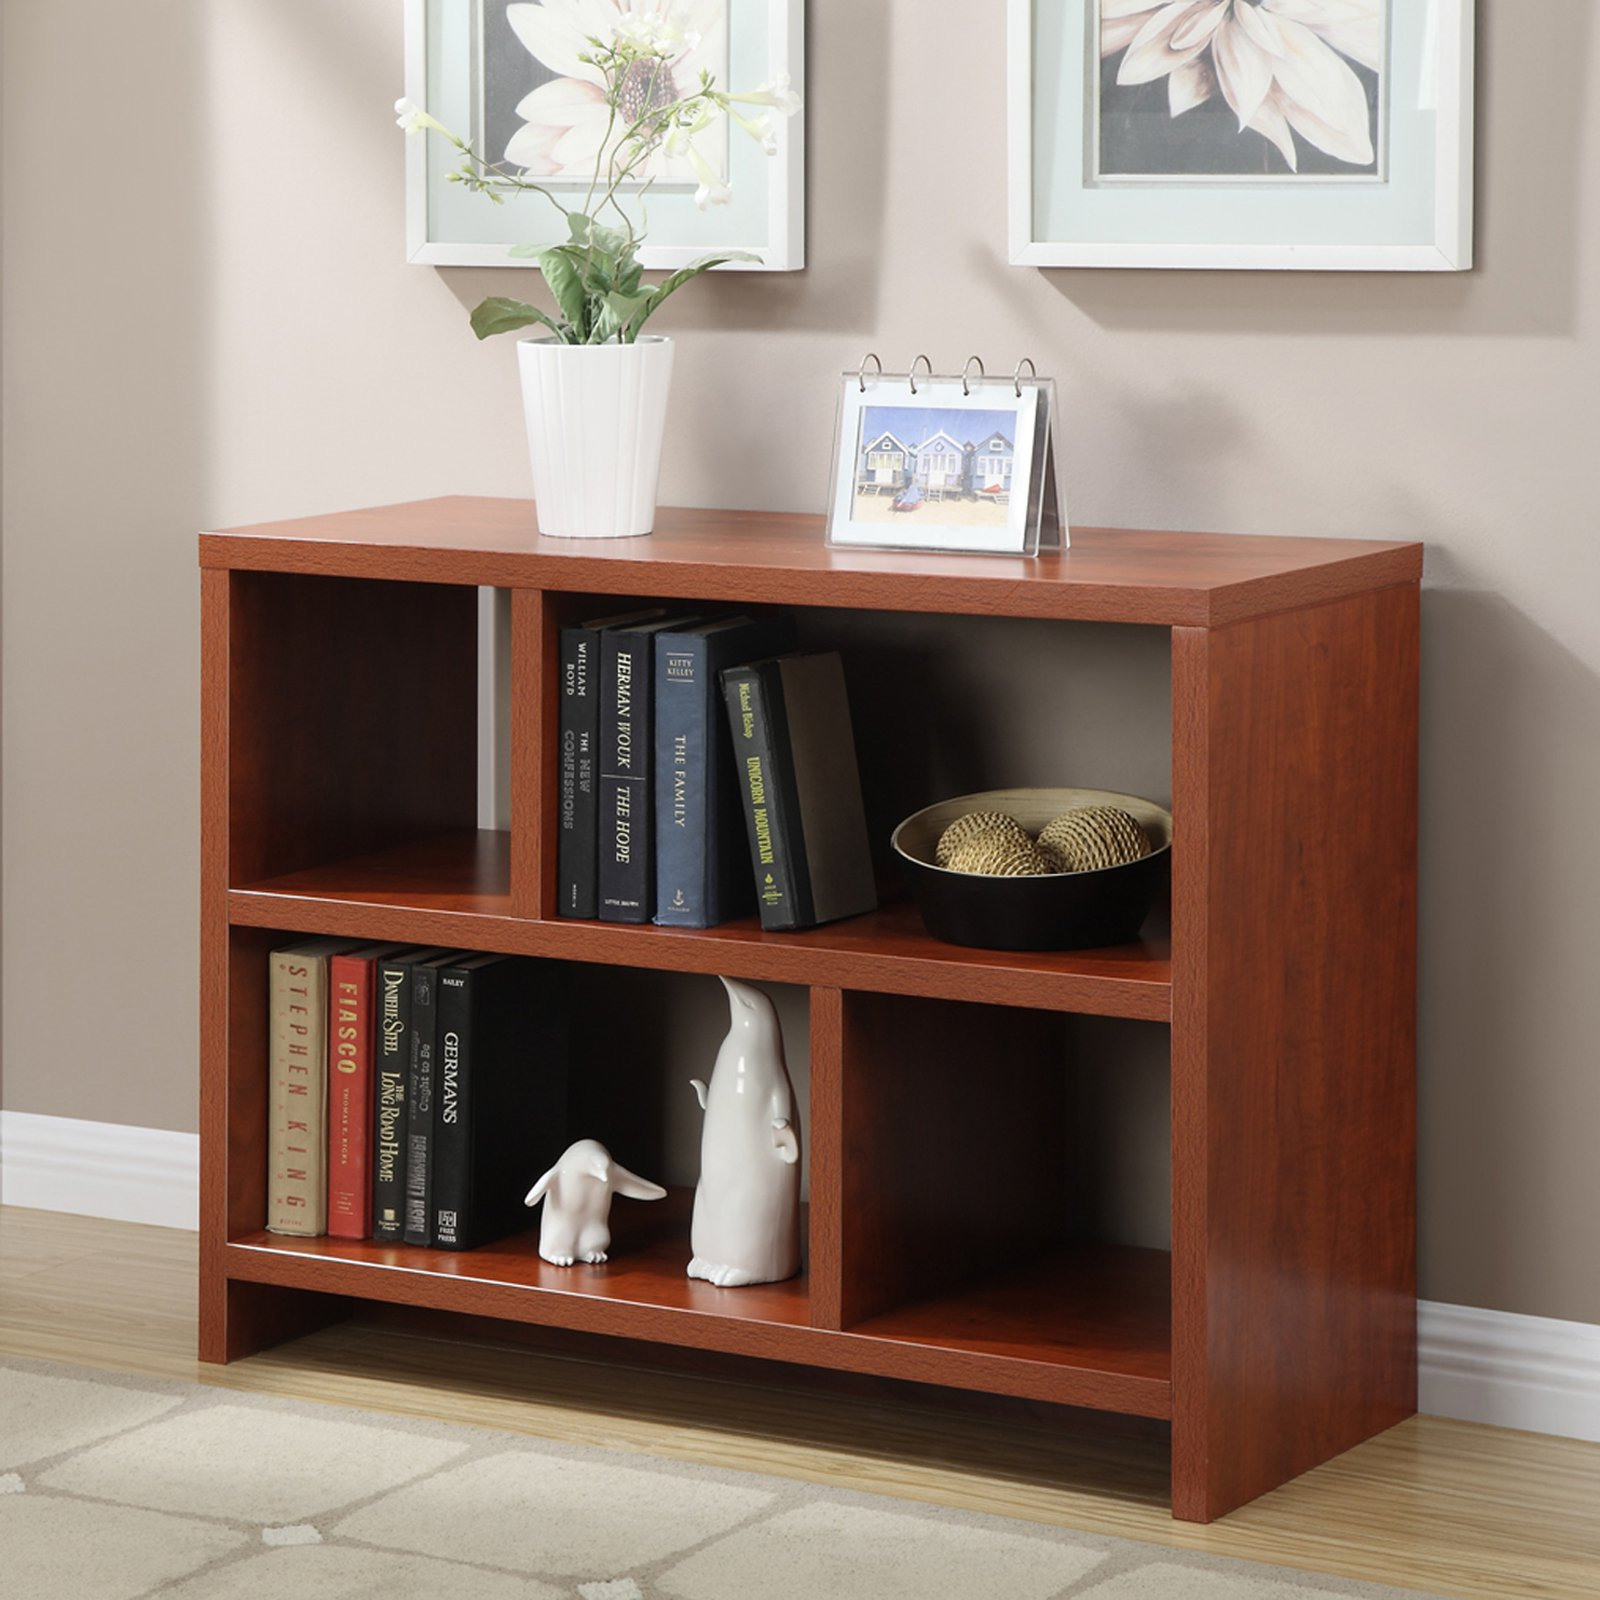 Convenience concepts northfield console table with shelves convenience concepts northfield console table with shelves multiple colors walmart geotapseo Image collections